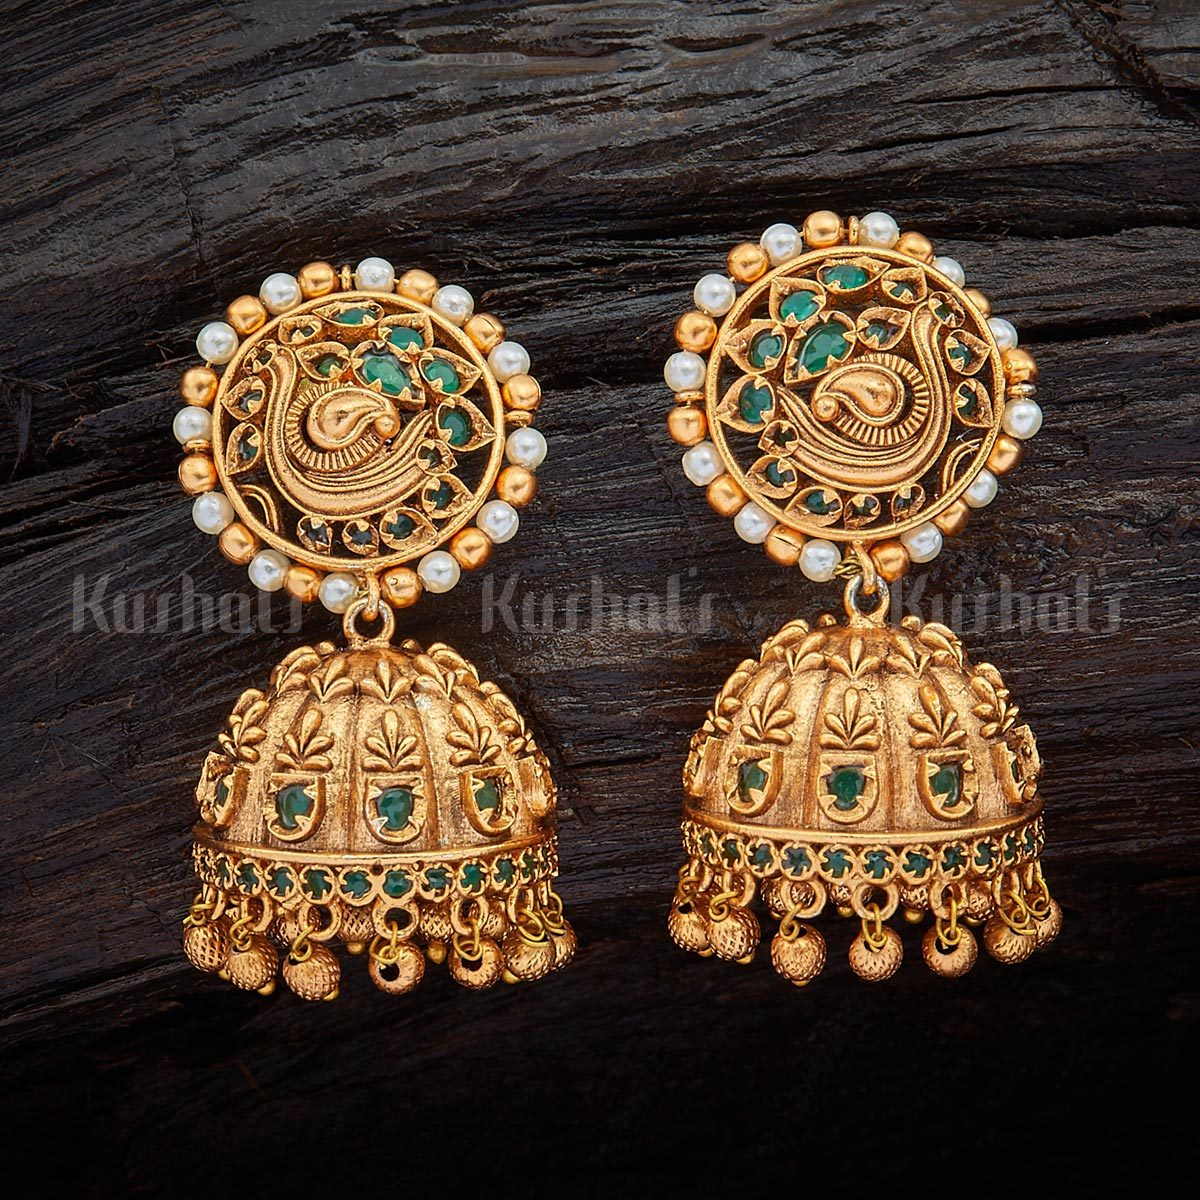 unique-jhumka-designs-2019 (1)